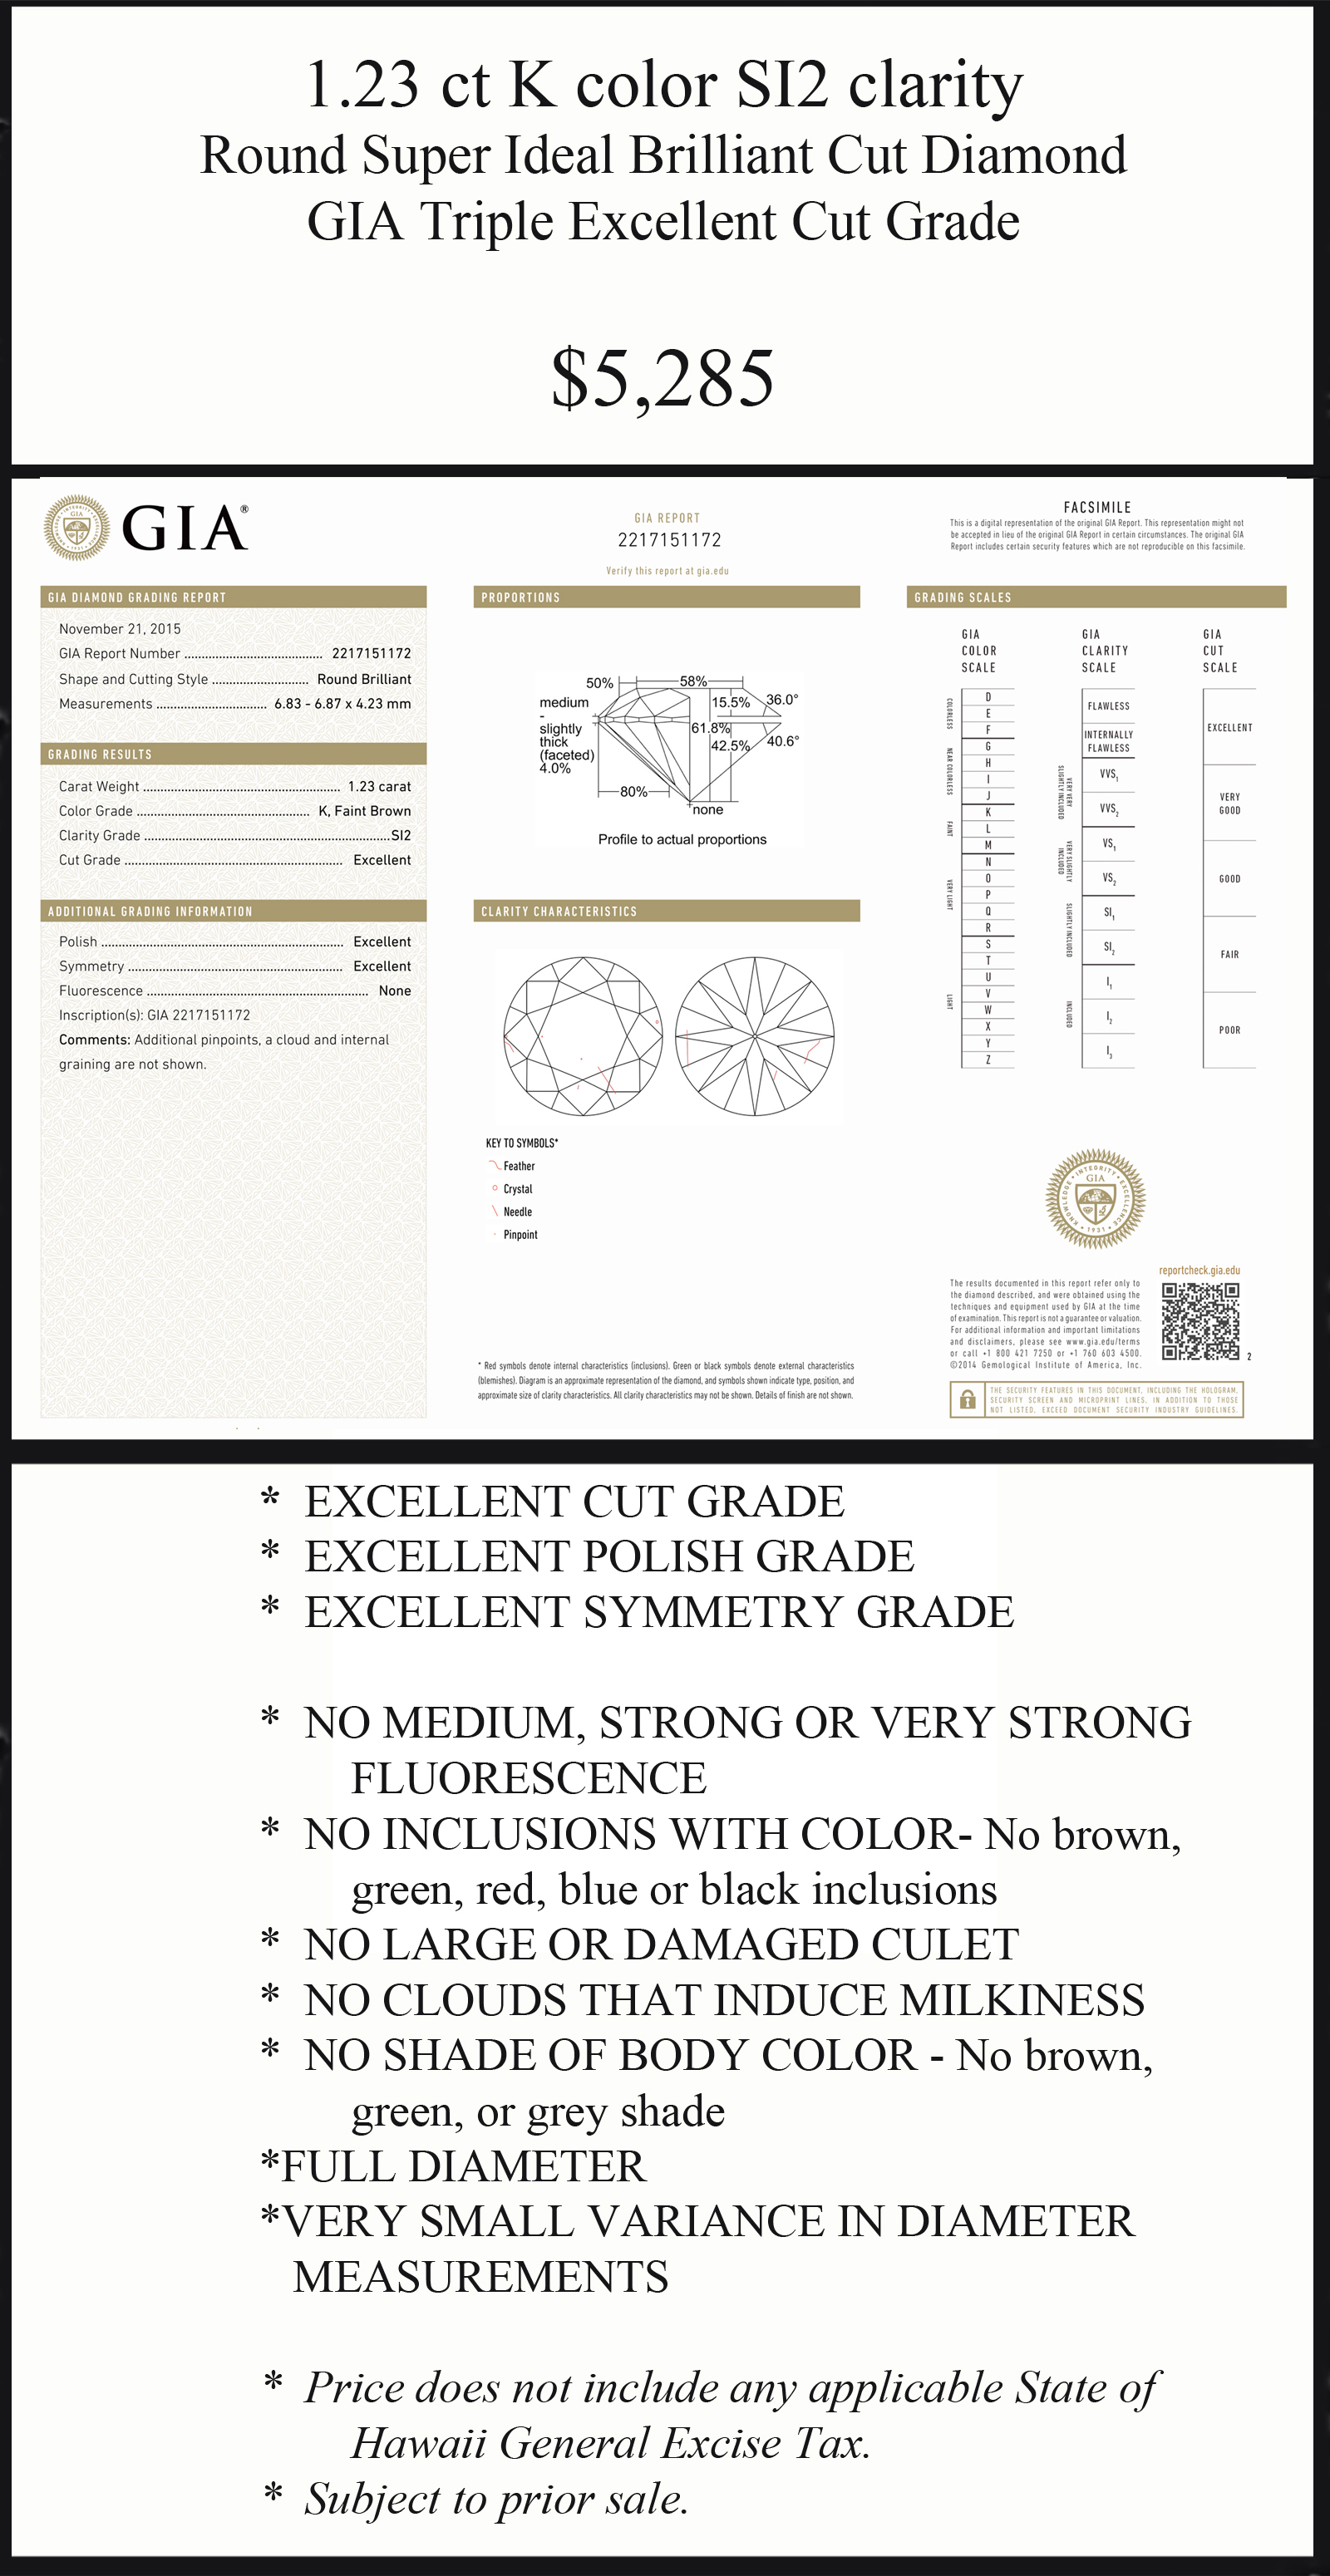 ask set lifestyle helps cut grading right with the shopping questions gia you a grade traveler report elite diamond